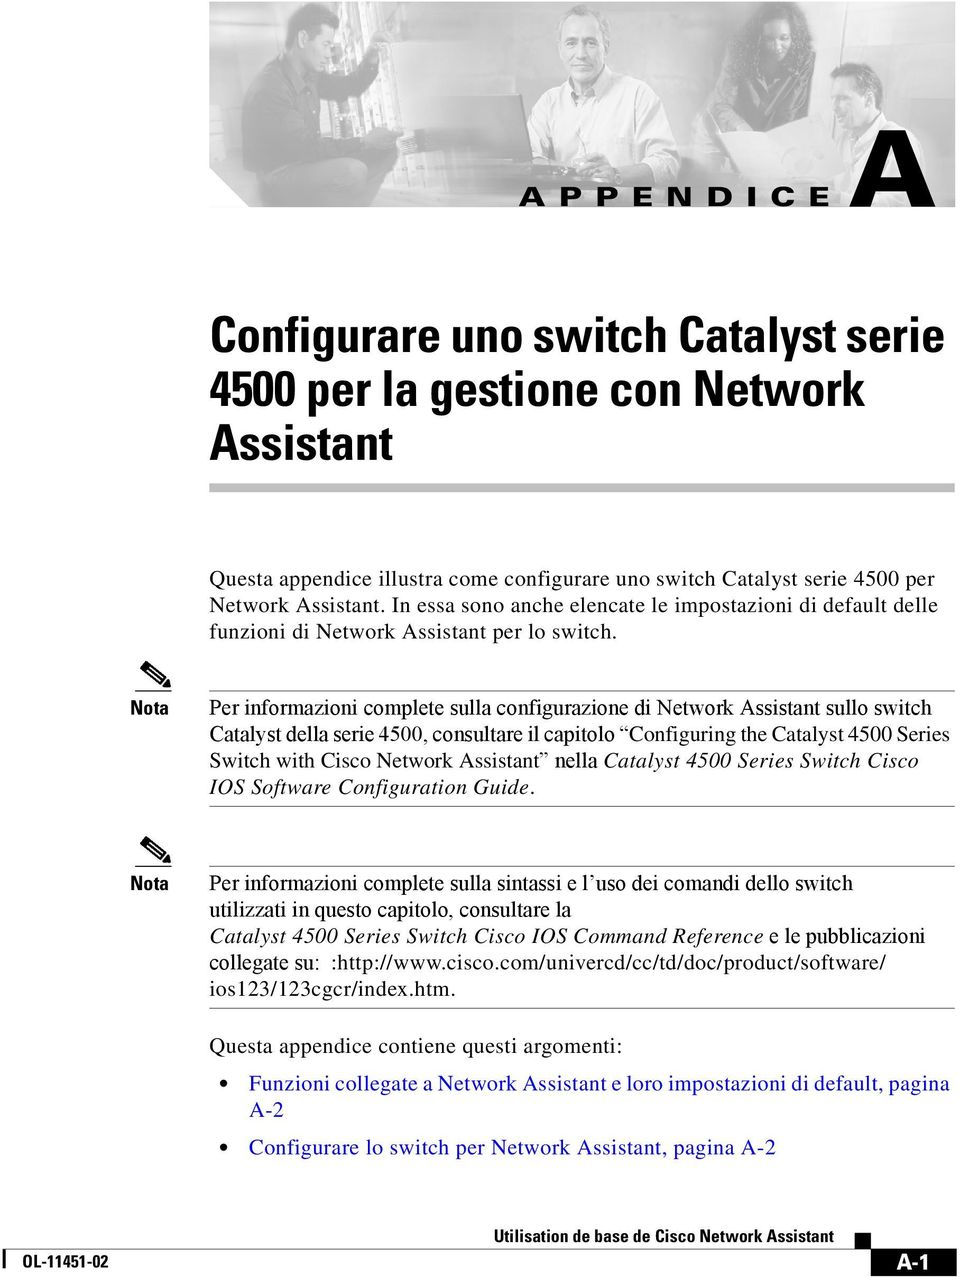 Per informazioni complete sulla configurazione di Network Assistant sullo switch Catalyst della serie 4500, consultare il capitolo Configuring the Catalyst 4500 Series Switch with Cisco Network